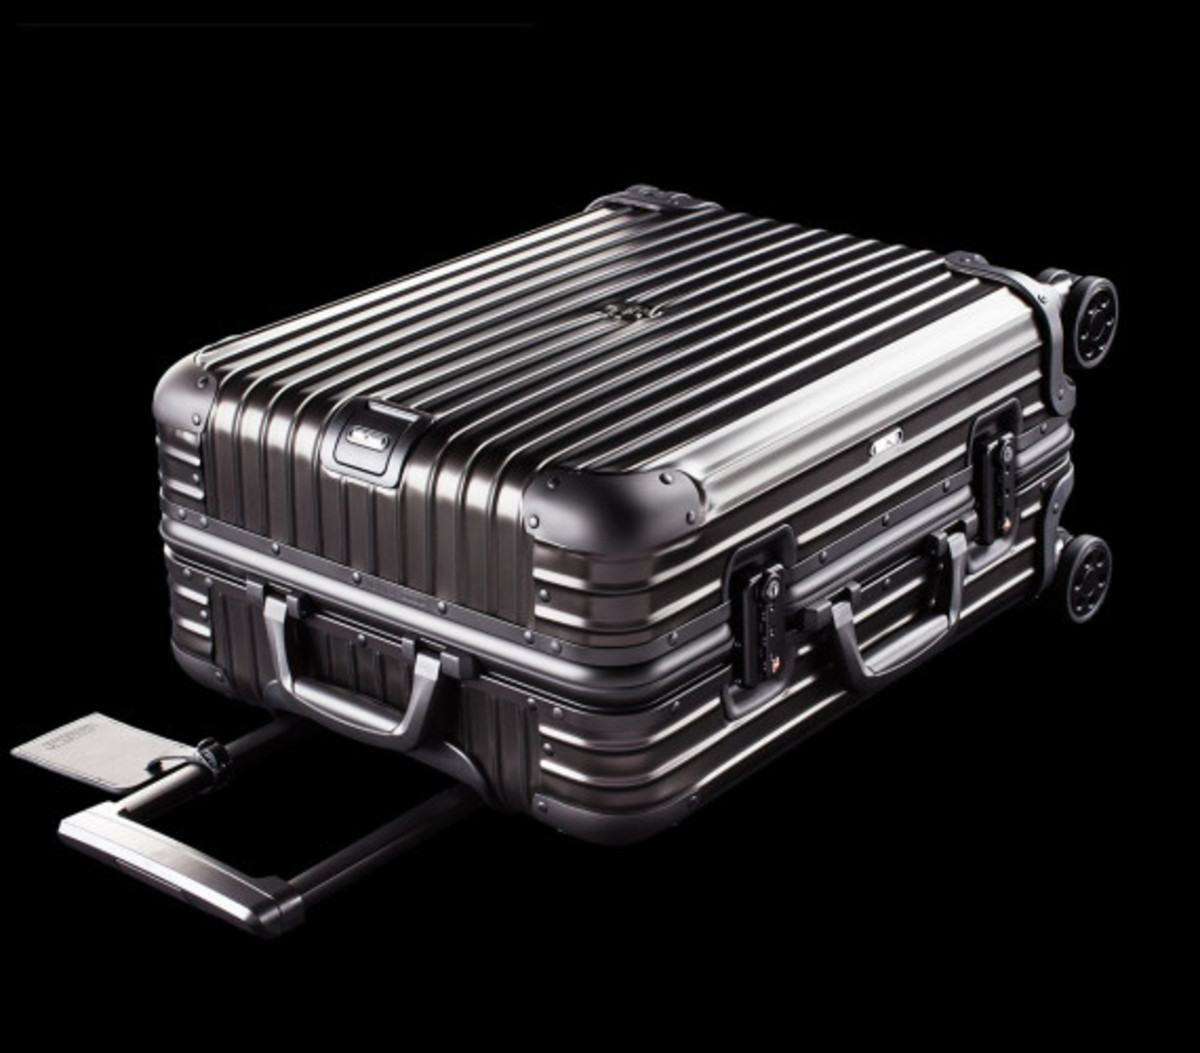 rimowa-and-moncler-luggage-collection-03